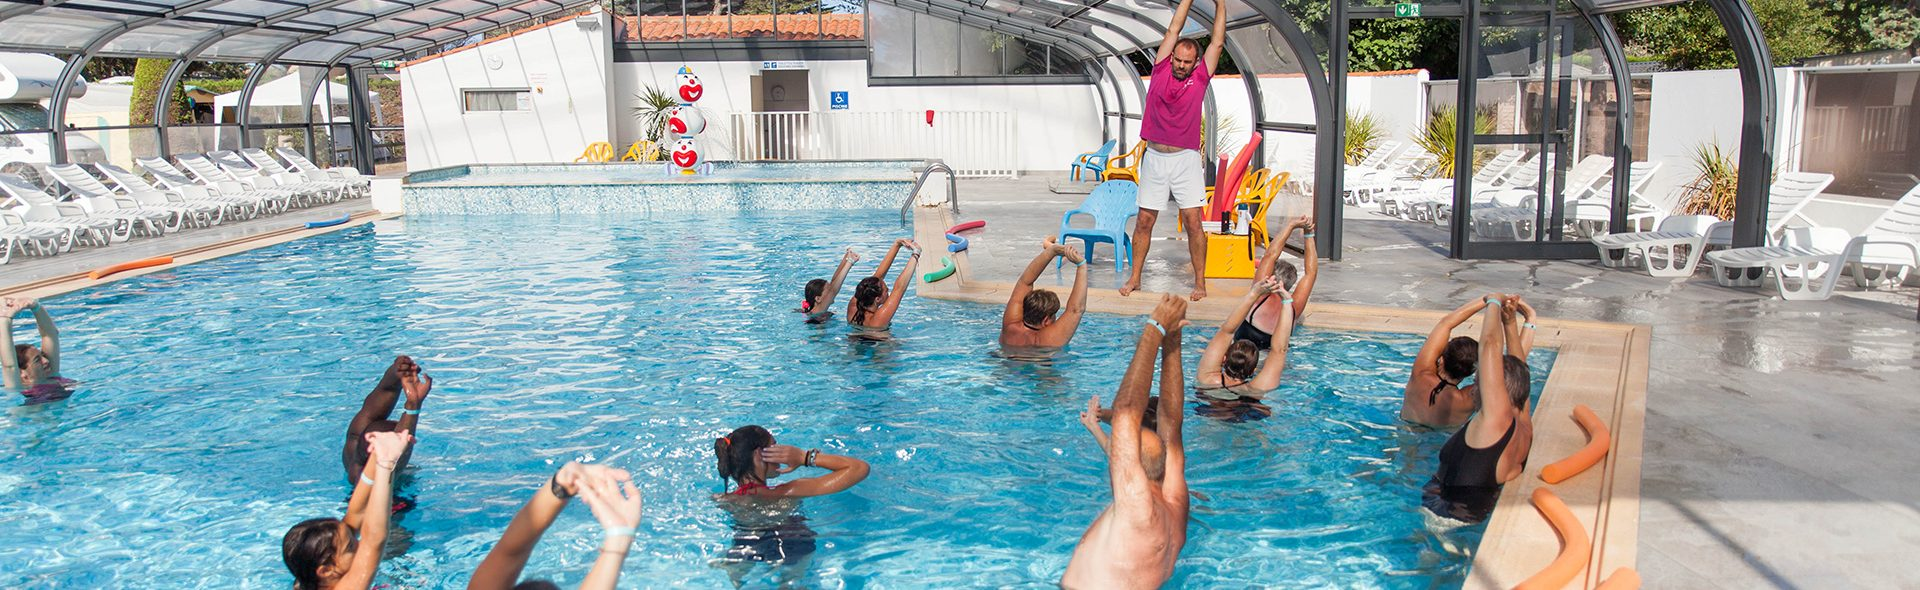 Camping Club Mahana : Aquagym Camping Club Mahana By La Pege (53)